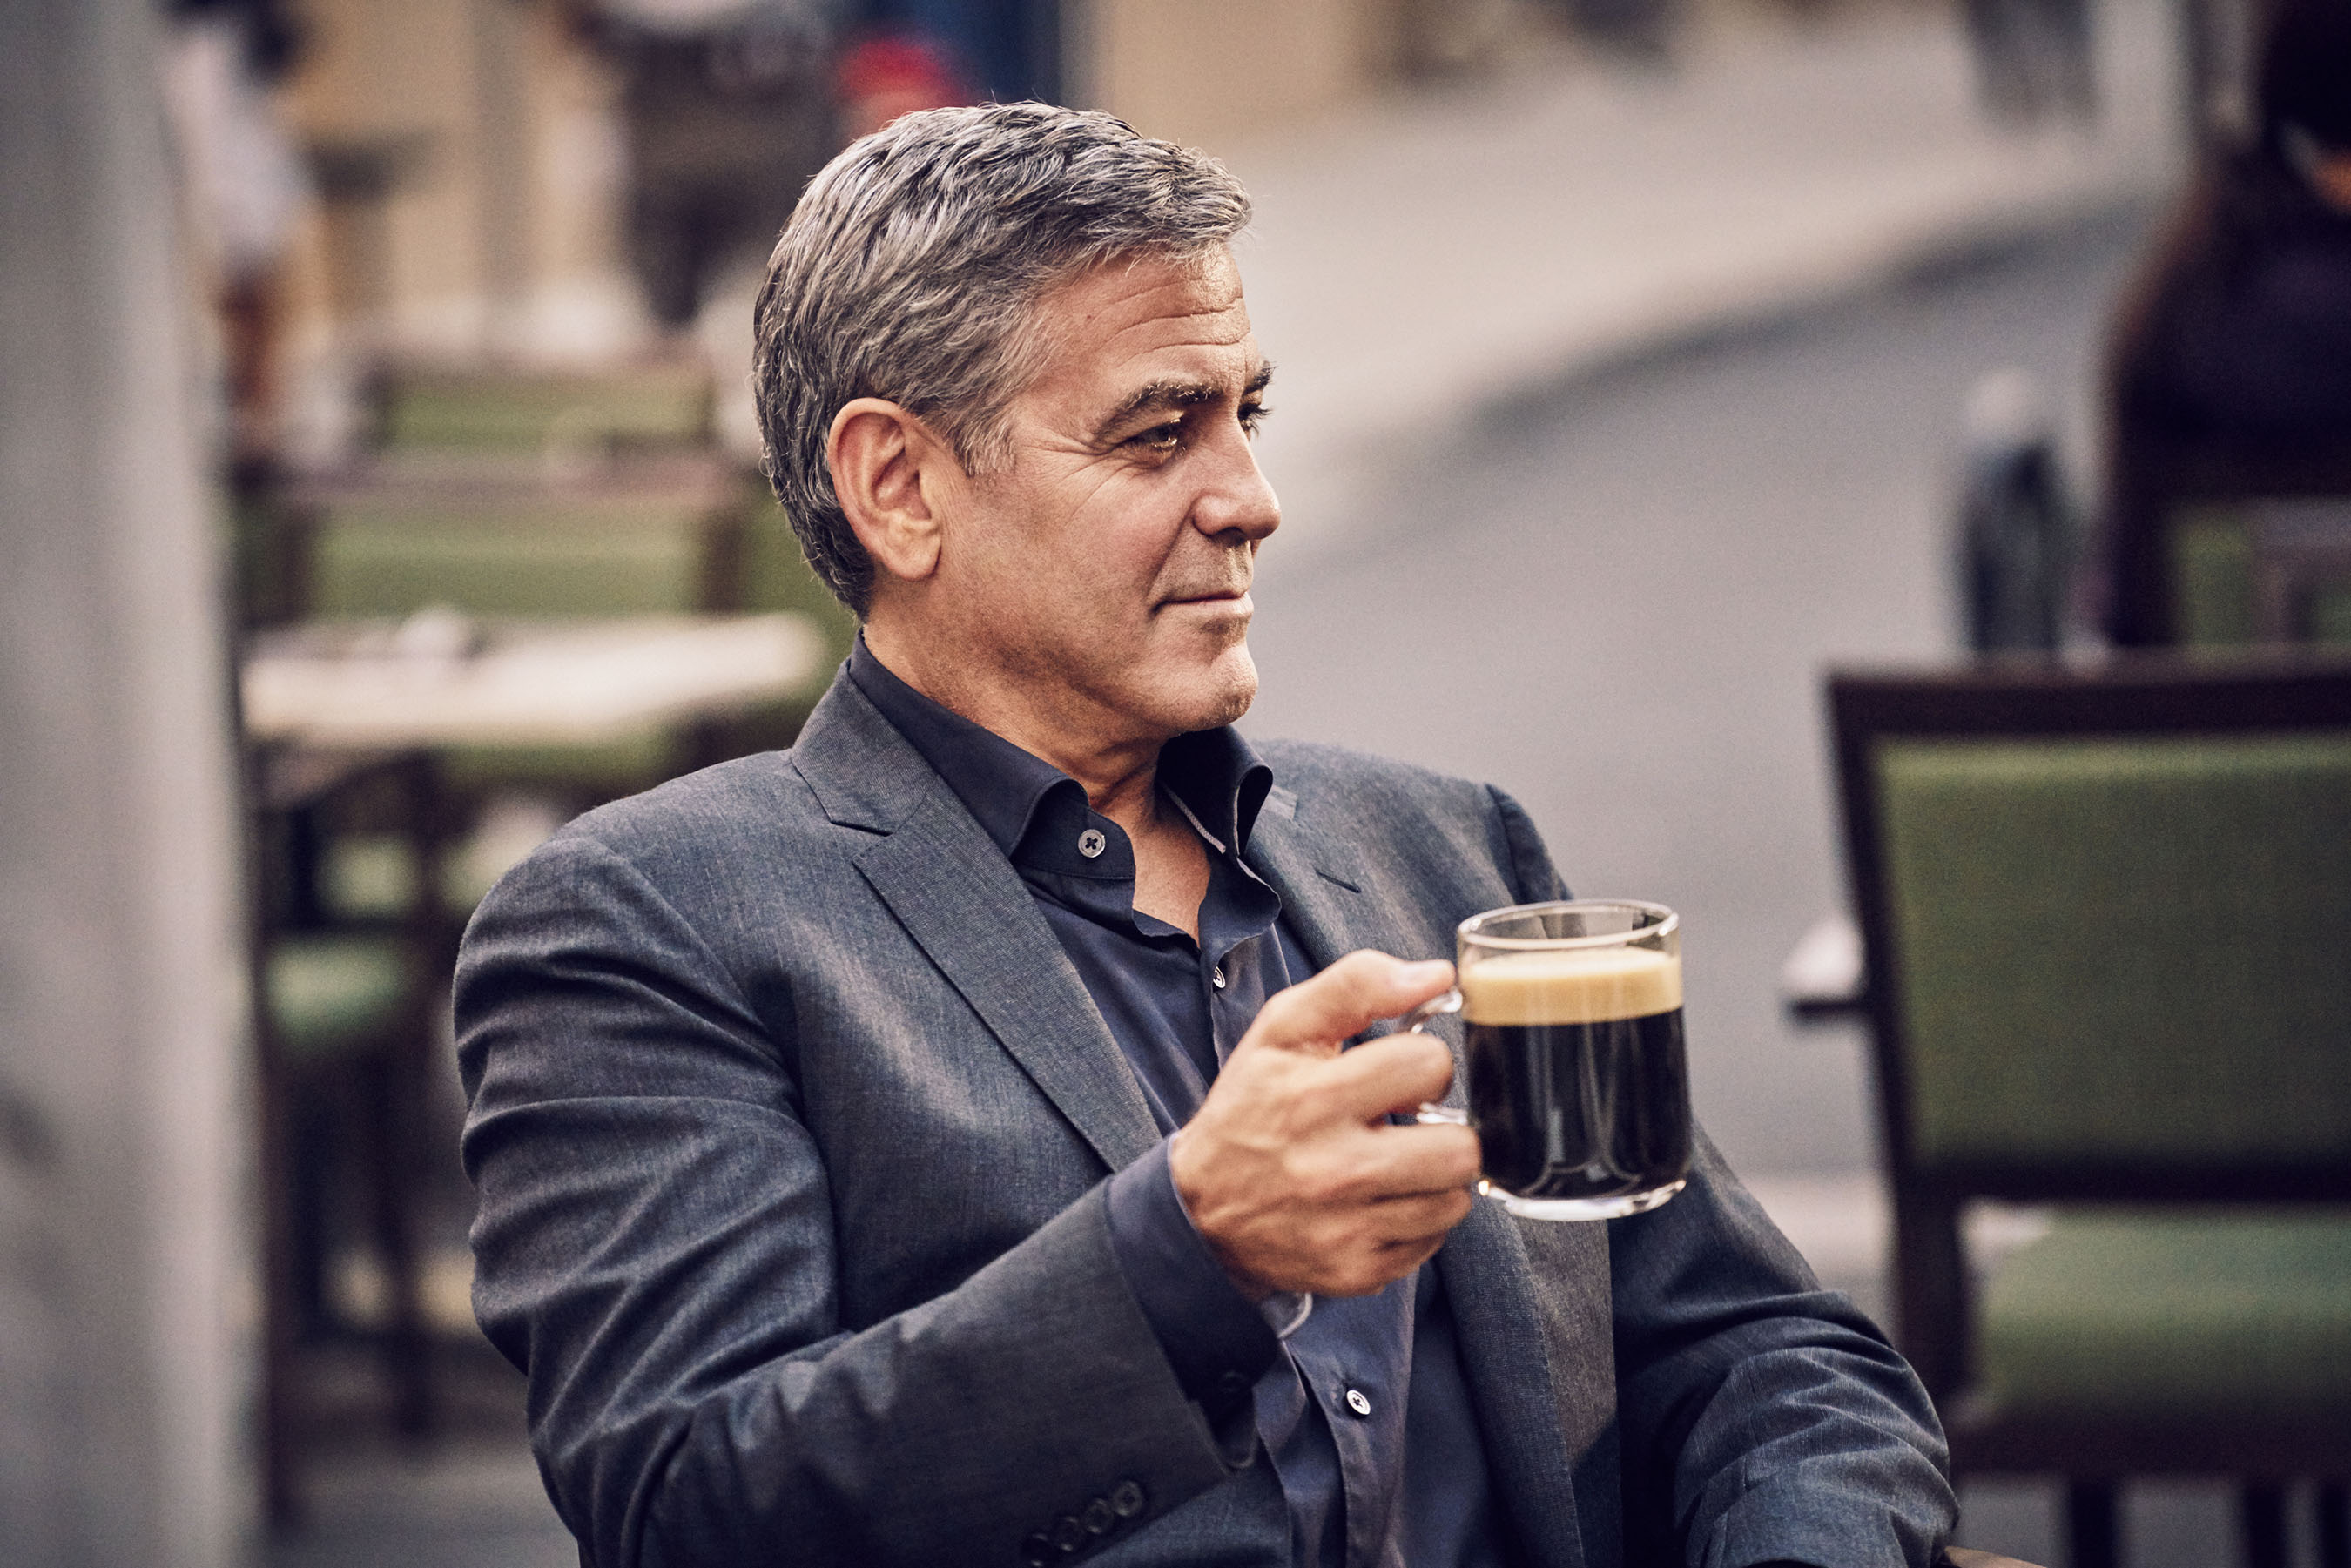 Here's Proof That Clooney Only Gets Better With Age Fb3681a2-6fab-4ab6-b2e5-1a489b396dc2.HR